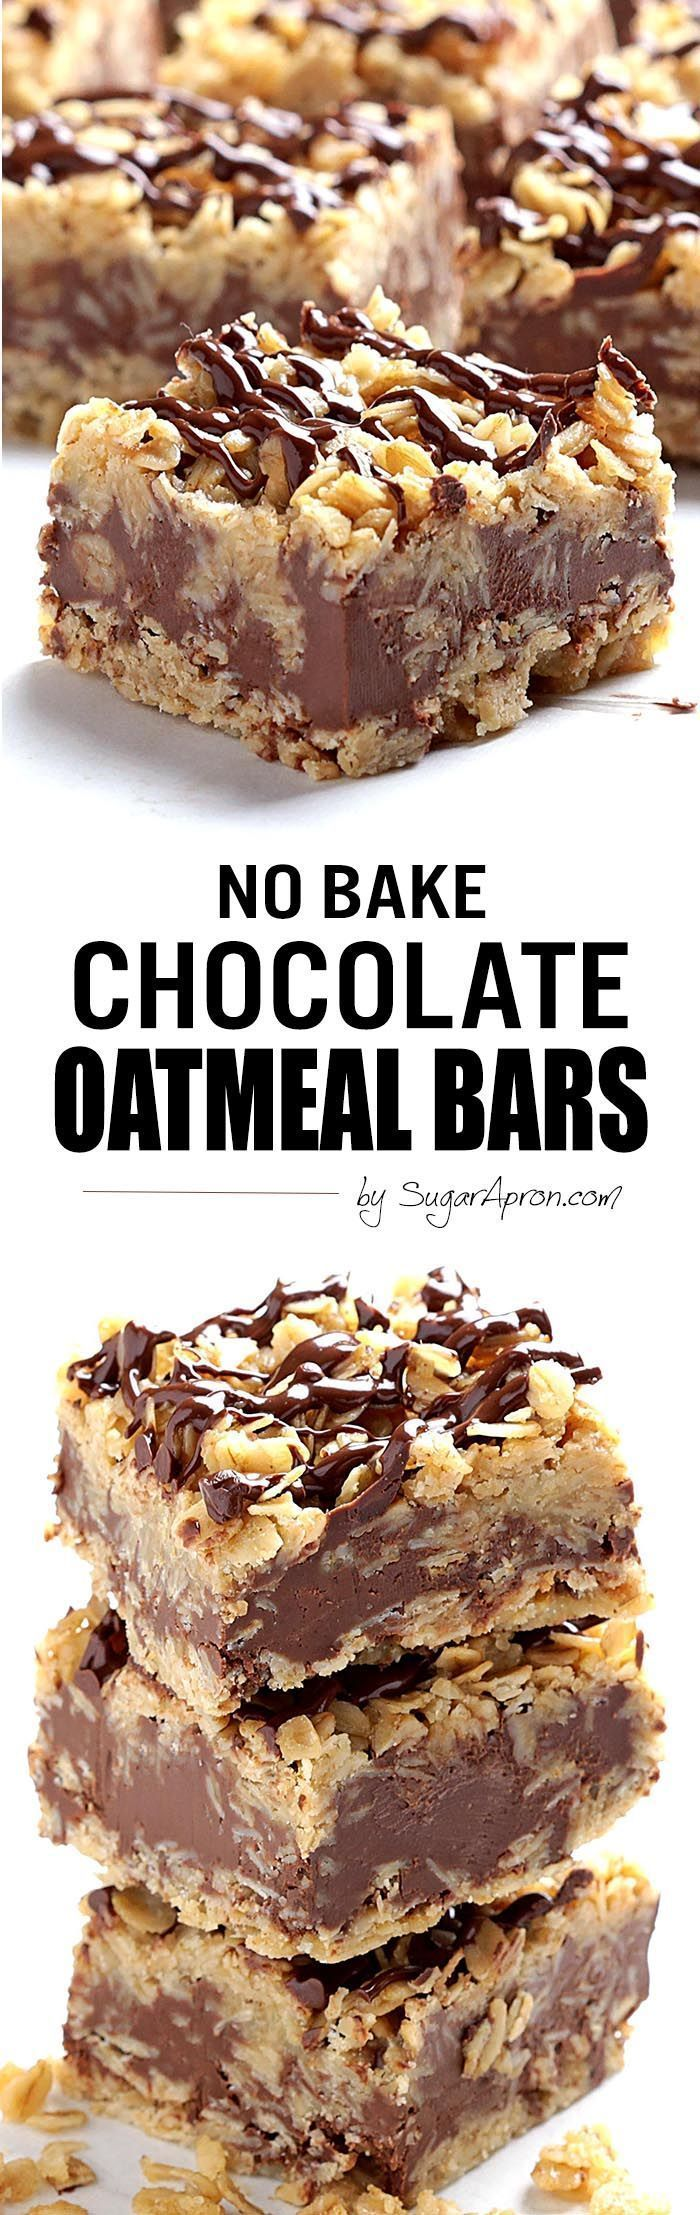 The only thing easier than making these no-bake chocolate oatmeal bars is eating them... ;)